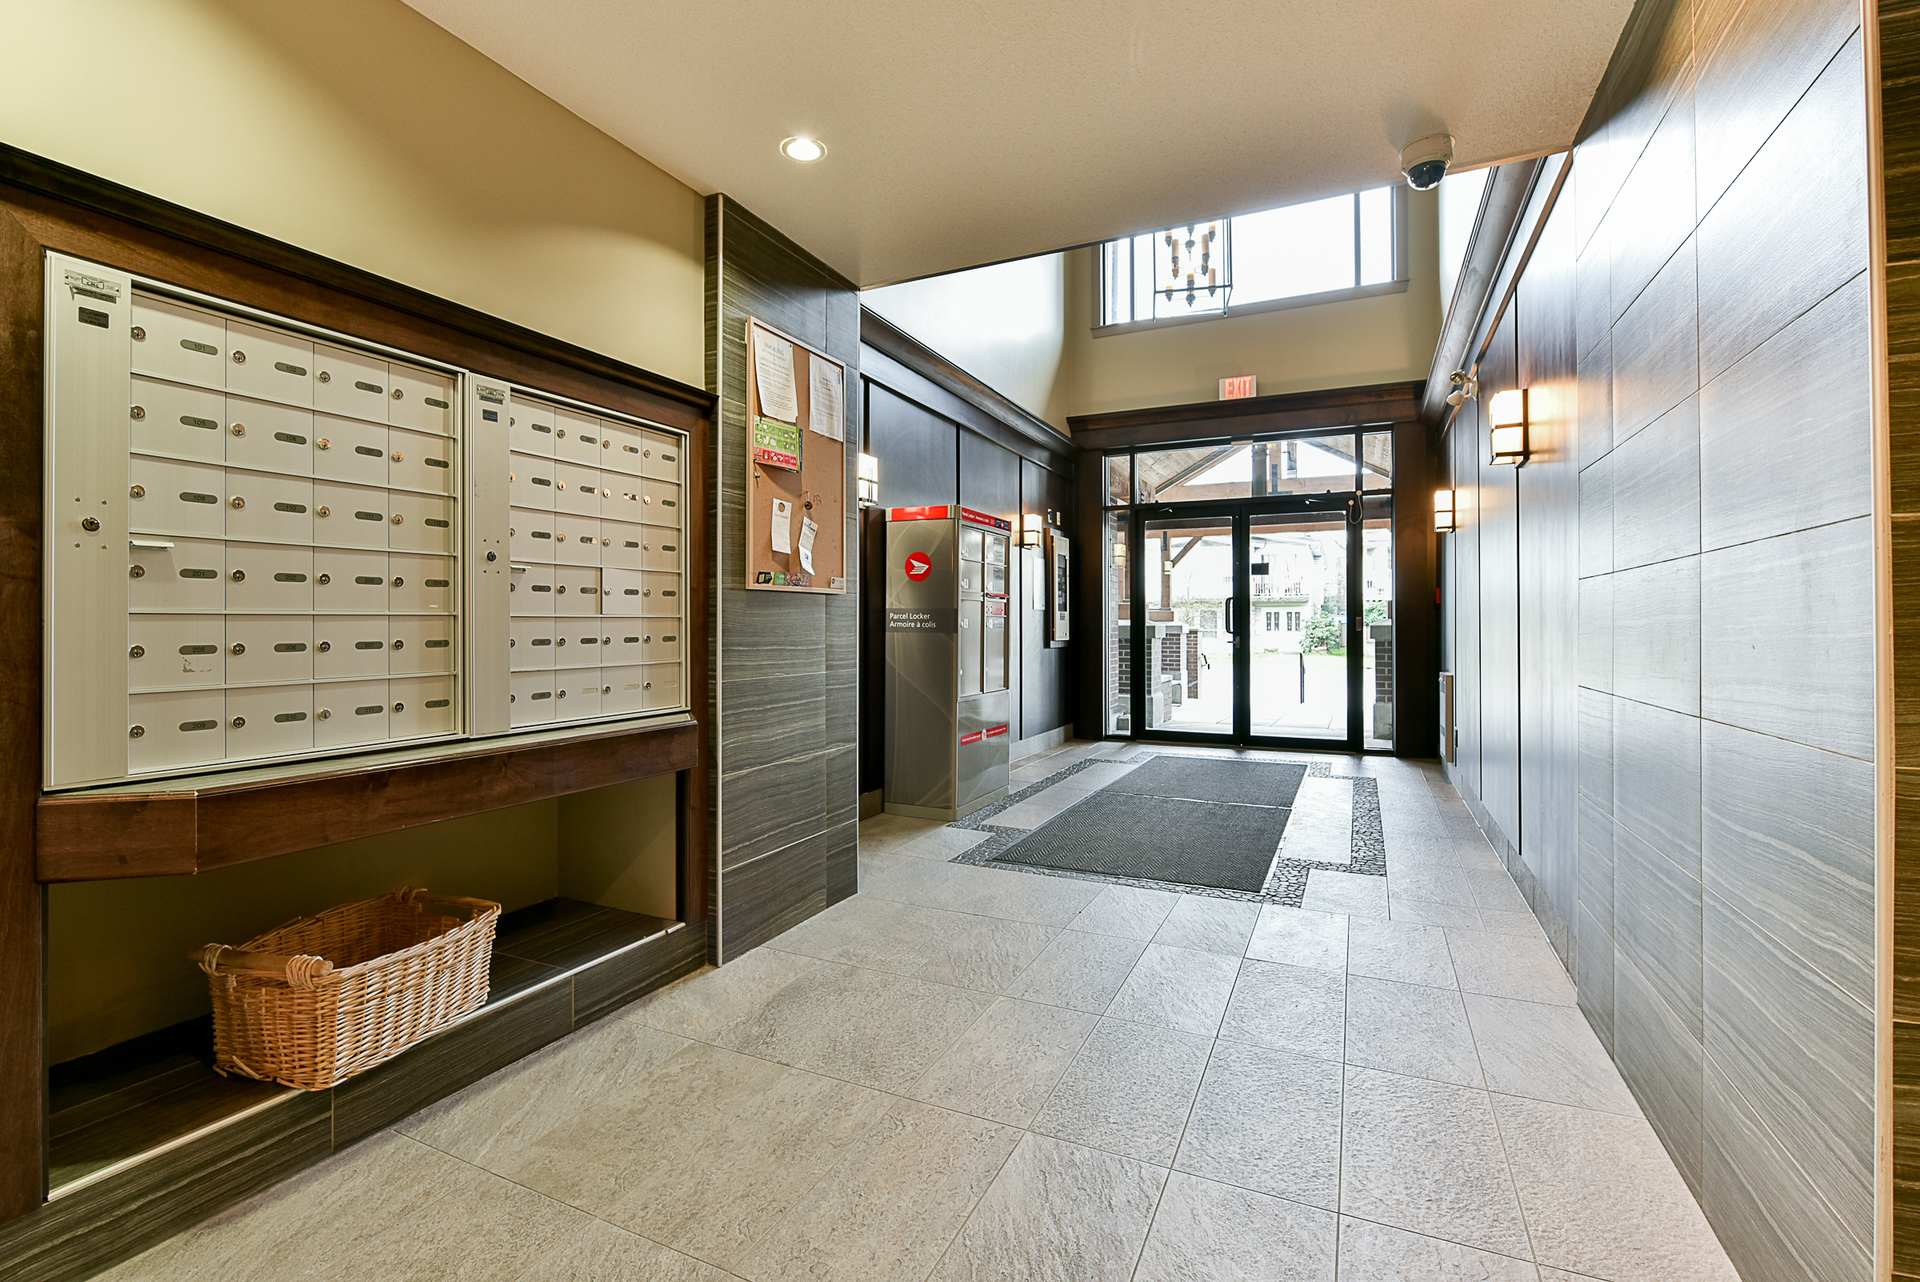 unit-209-2175-fraser-avenue-port-coquitlam-7 at #209 - 2175 Fraser Avenue, Glenwood PQ, Port Coquitlam